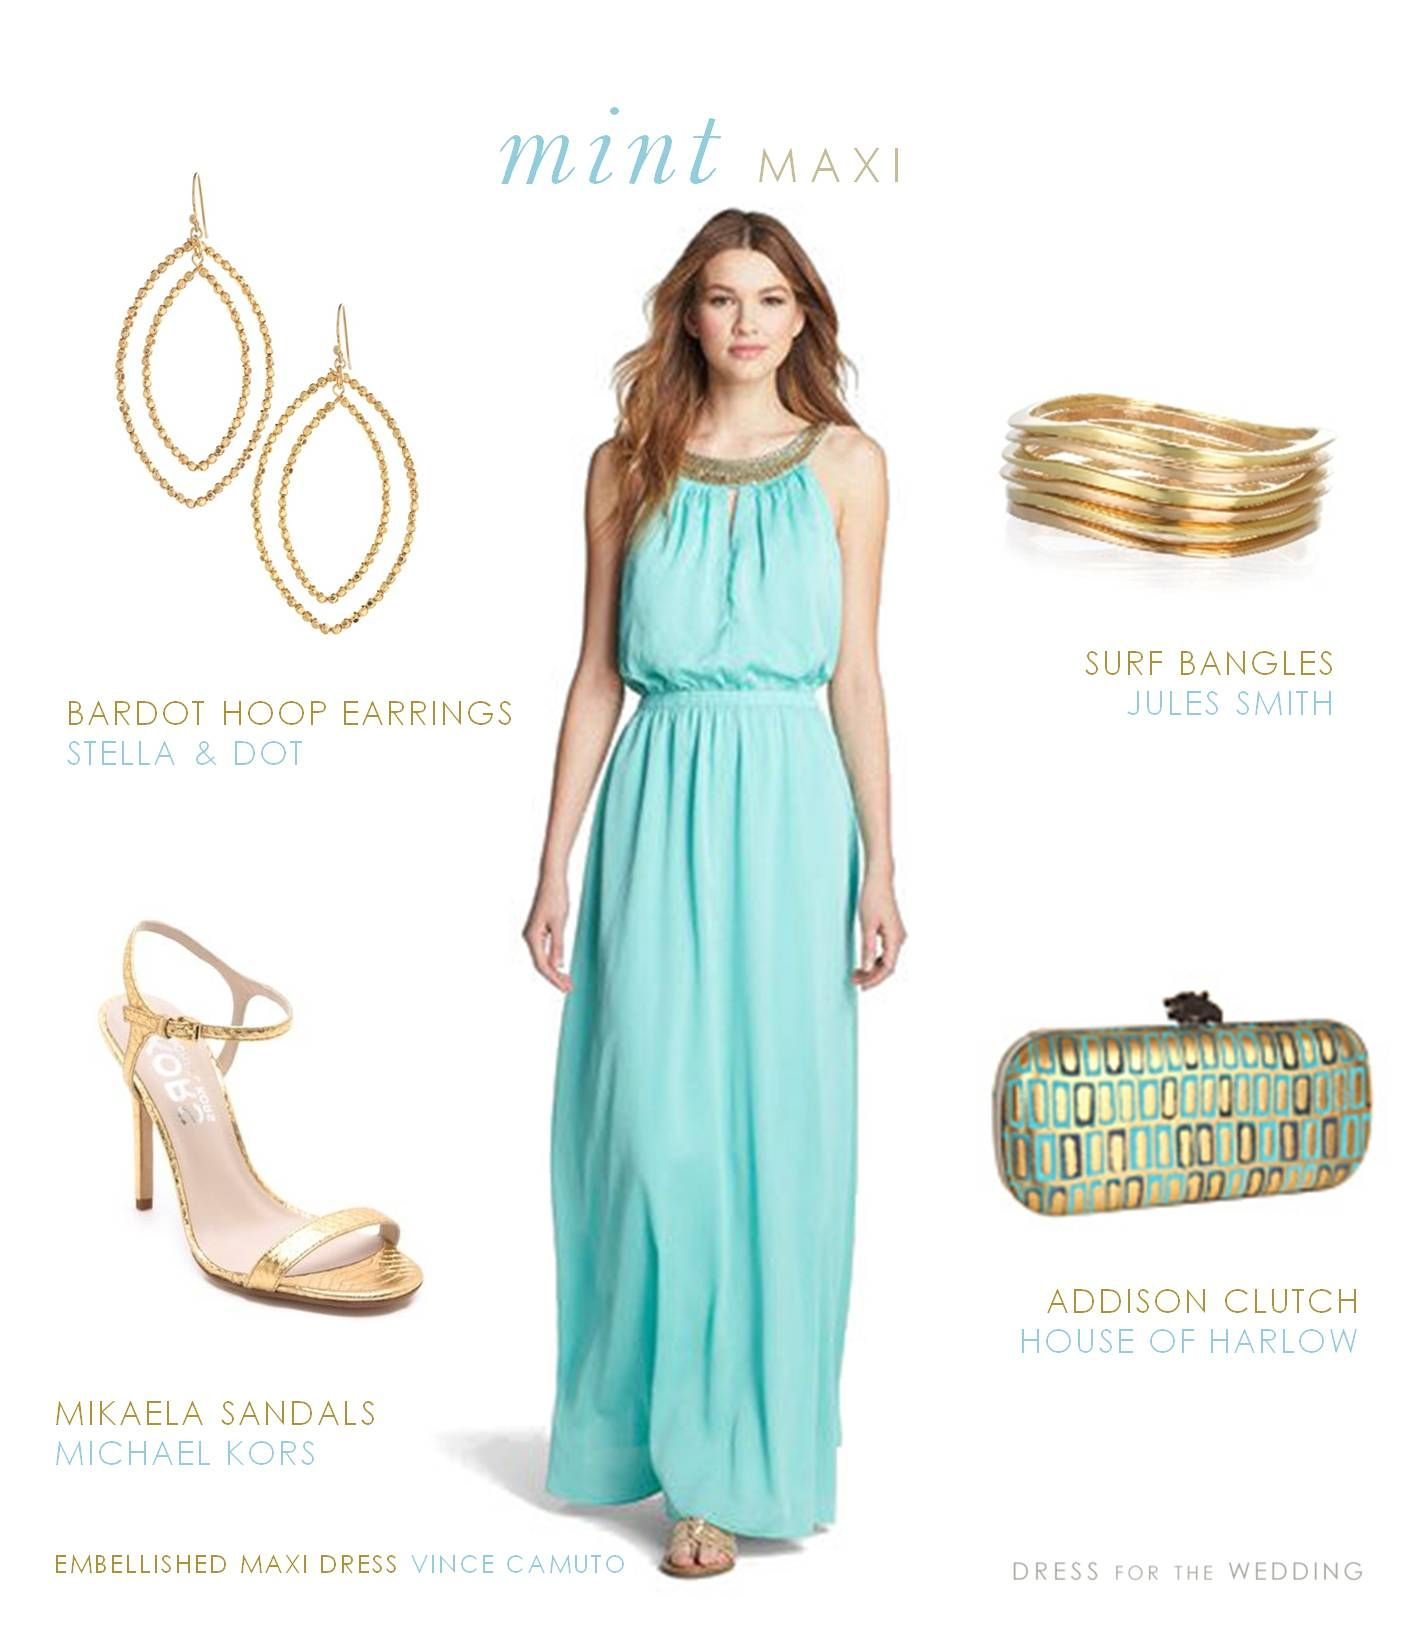 Maxi Dress for a Wedding | Maxi dresses, Semi formal maxi dresses ...